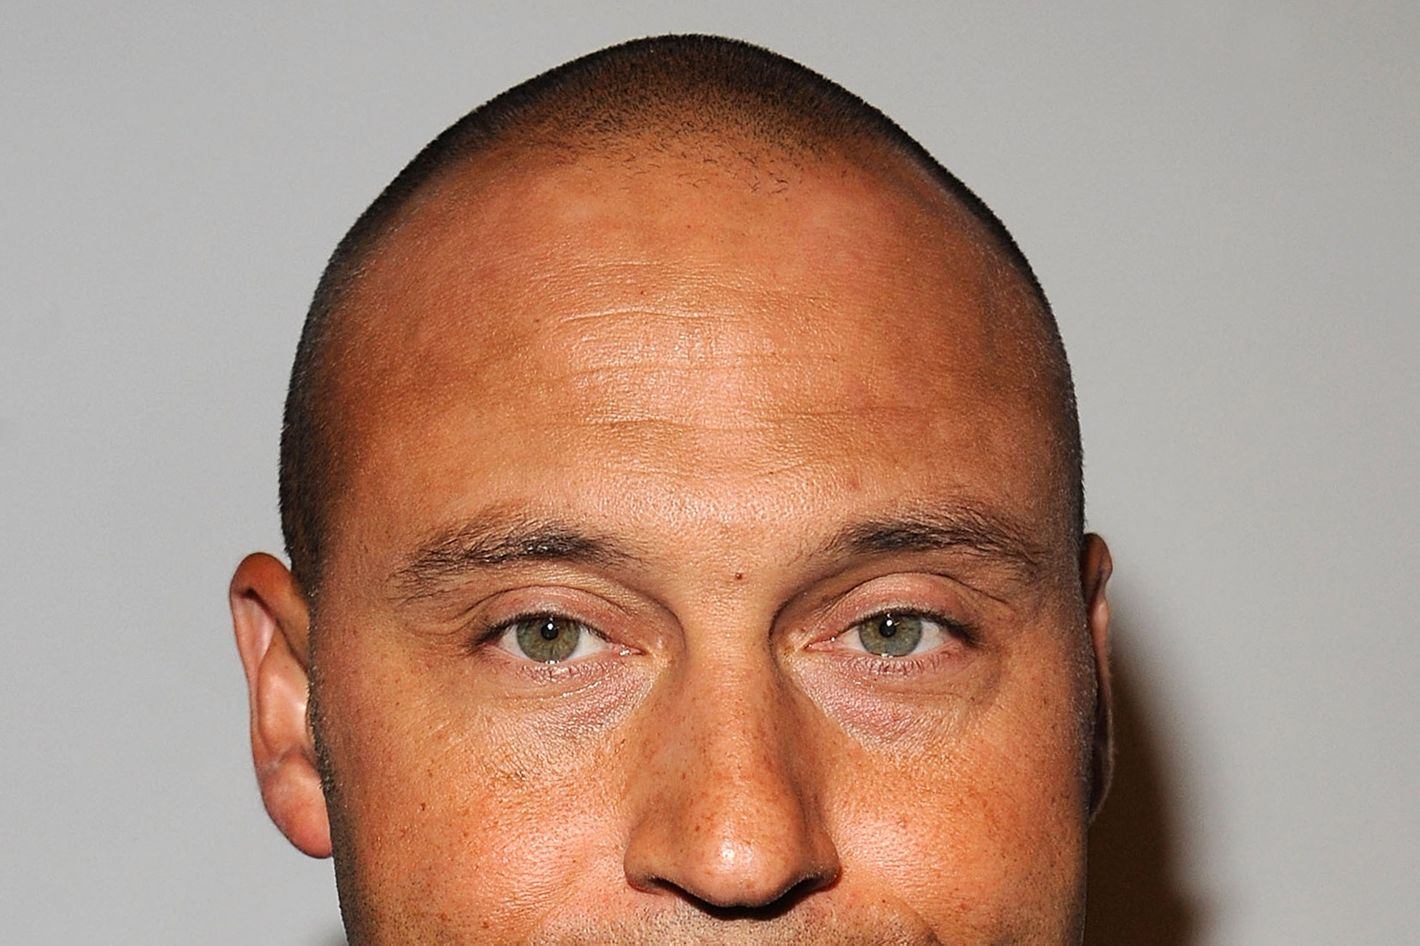 """Derek Jeter attends the Billy Crystal's """"700 Sundays"""" Broadway opening night at Imperial Theatre on November 13, 2013 in New York City."""